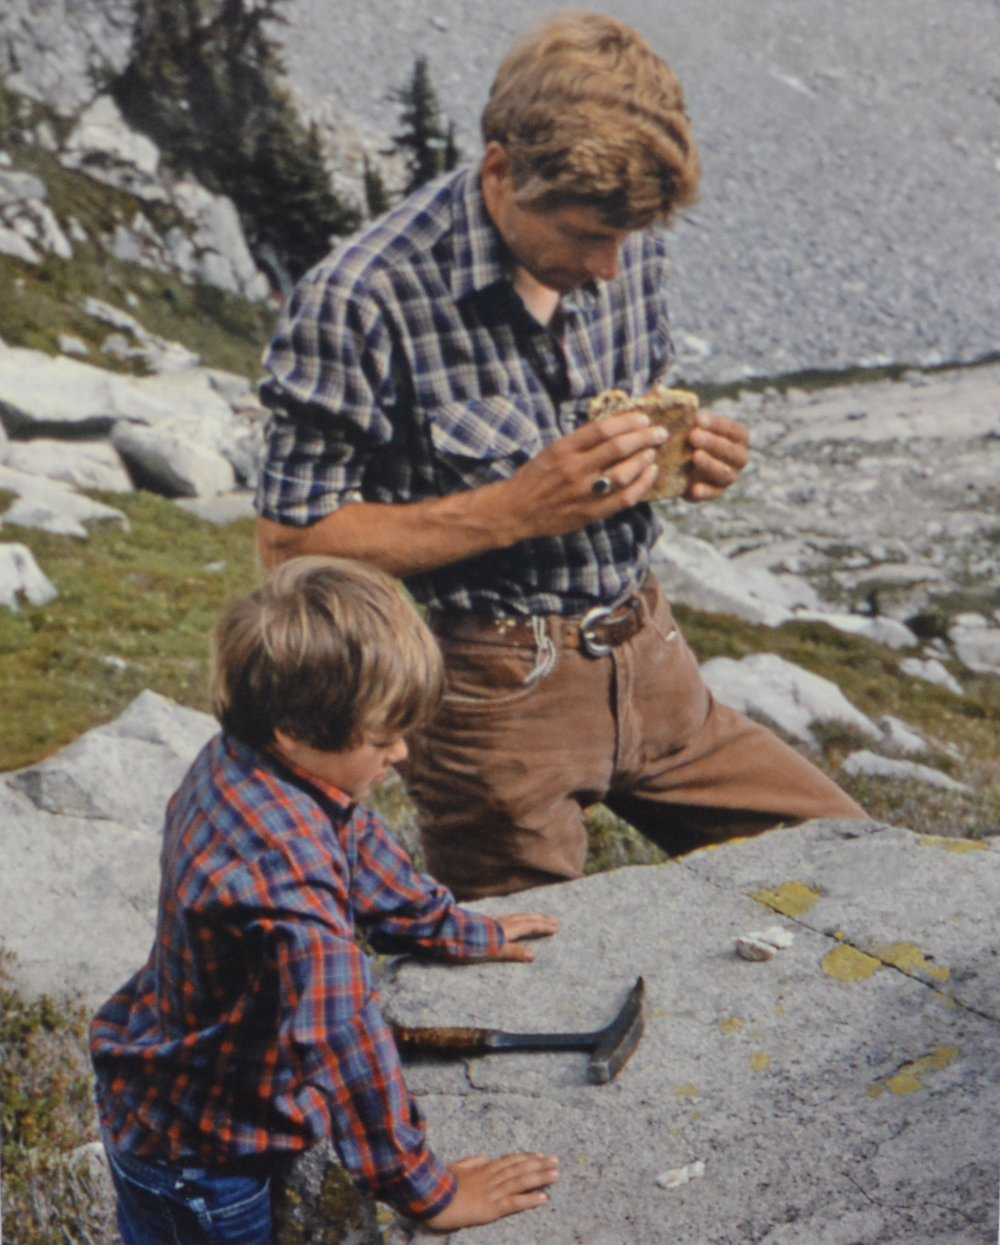 Decades later, collecting minerals is still my favorite pastime!